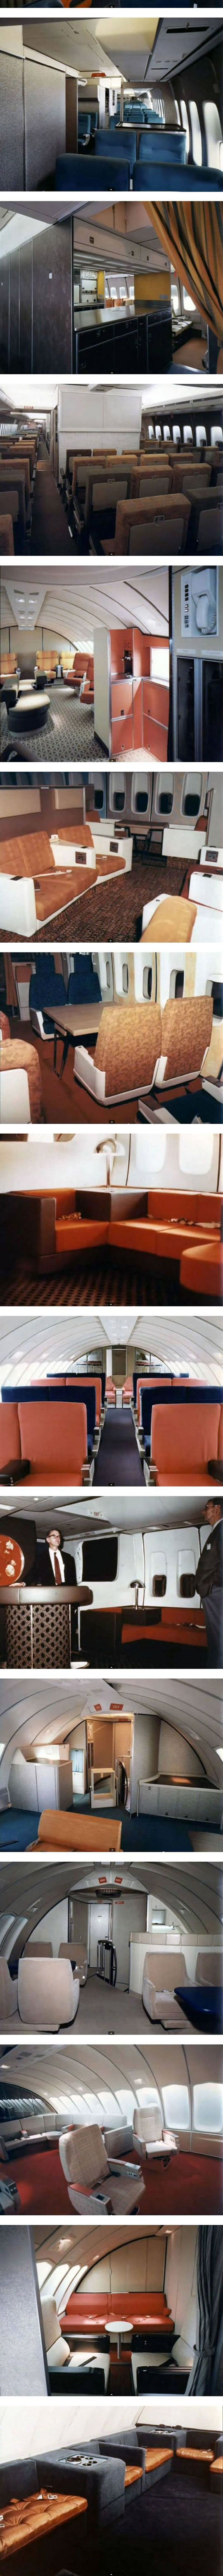 Airplane Travel In The 1970s - all of these are of course in the Boeing 747